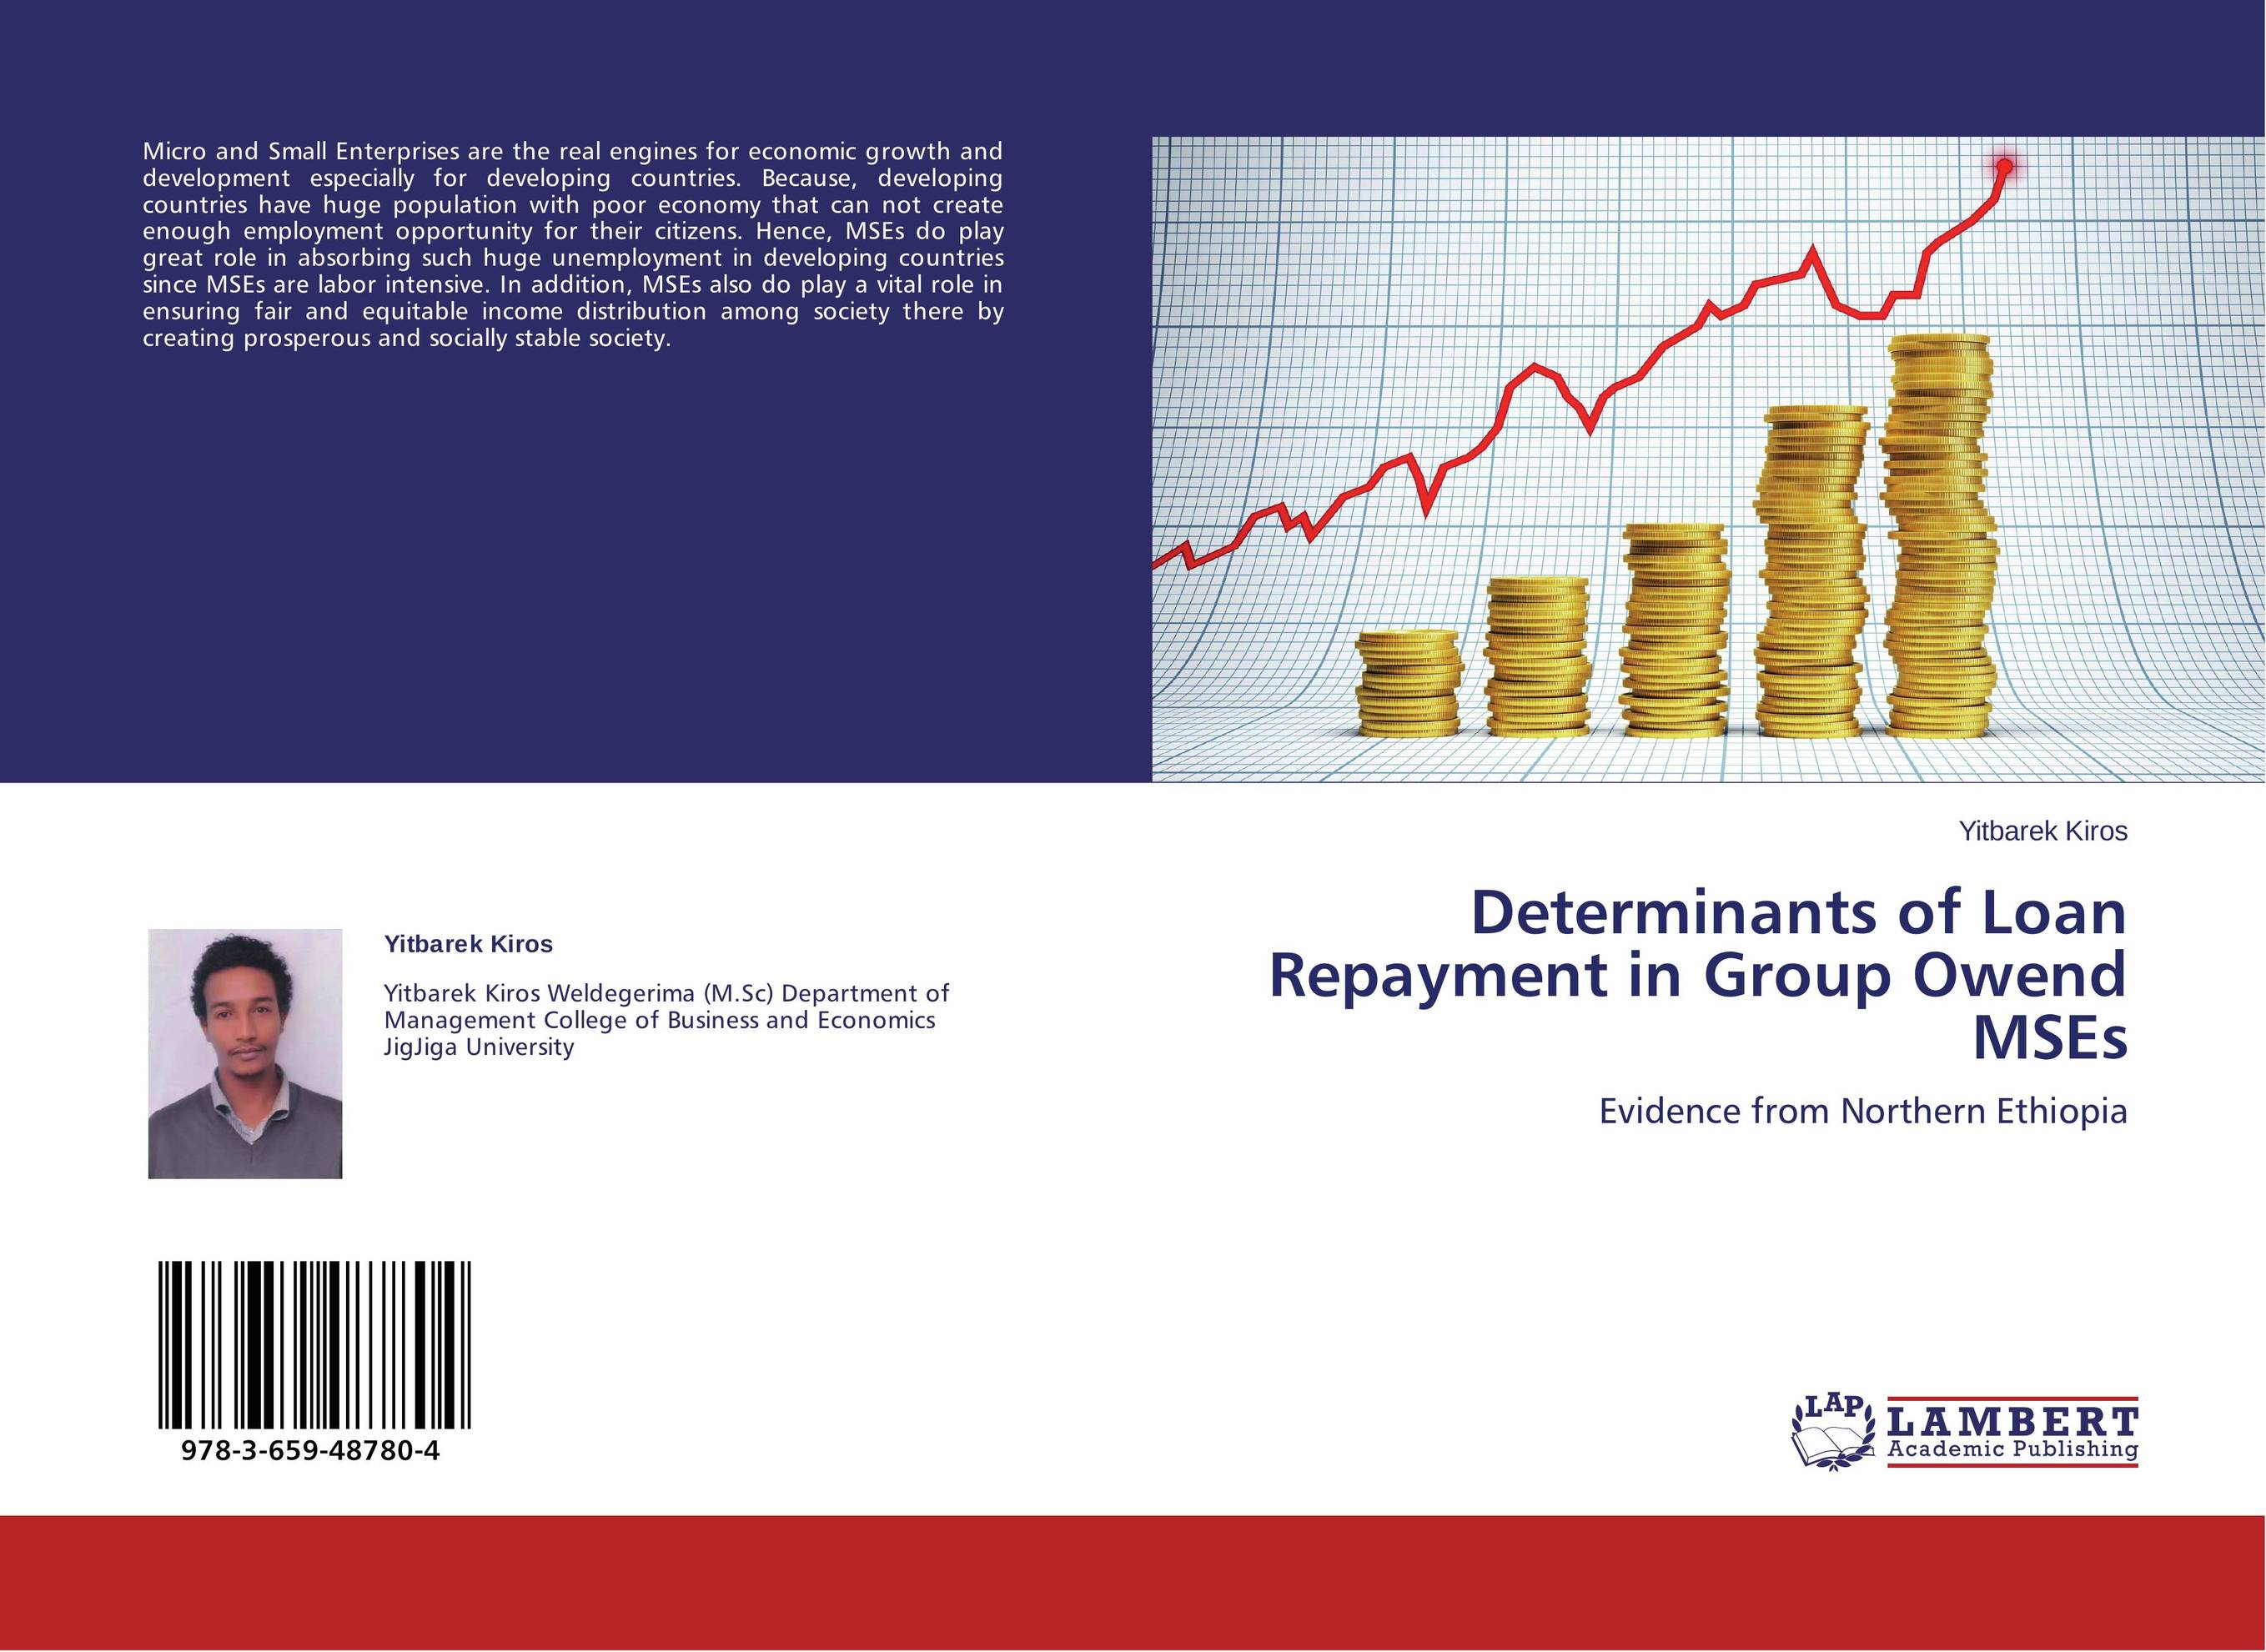 study on the objectives of micro finance institutions finance essay Compared to other micro finance institutions, rusaccos have extraordinarily low operating expense ratios- the primary ratio to determine efficiency it is expected that the operating expenses of rusaccos is between 4-4 5% of average assets.